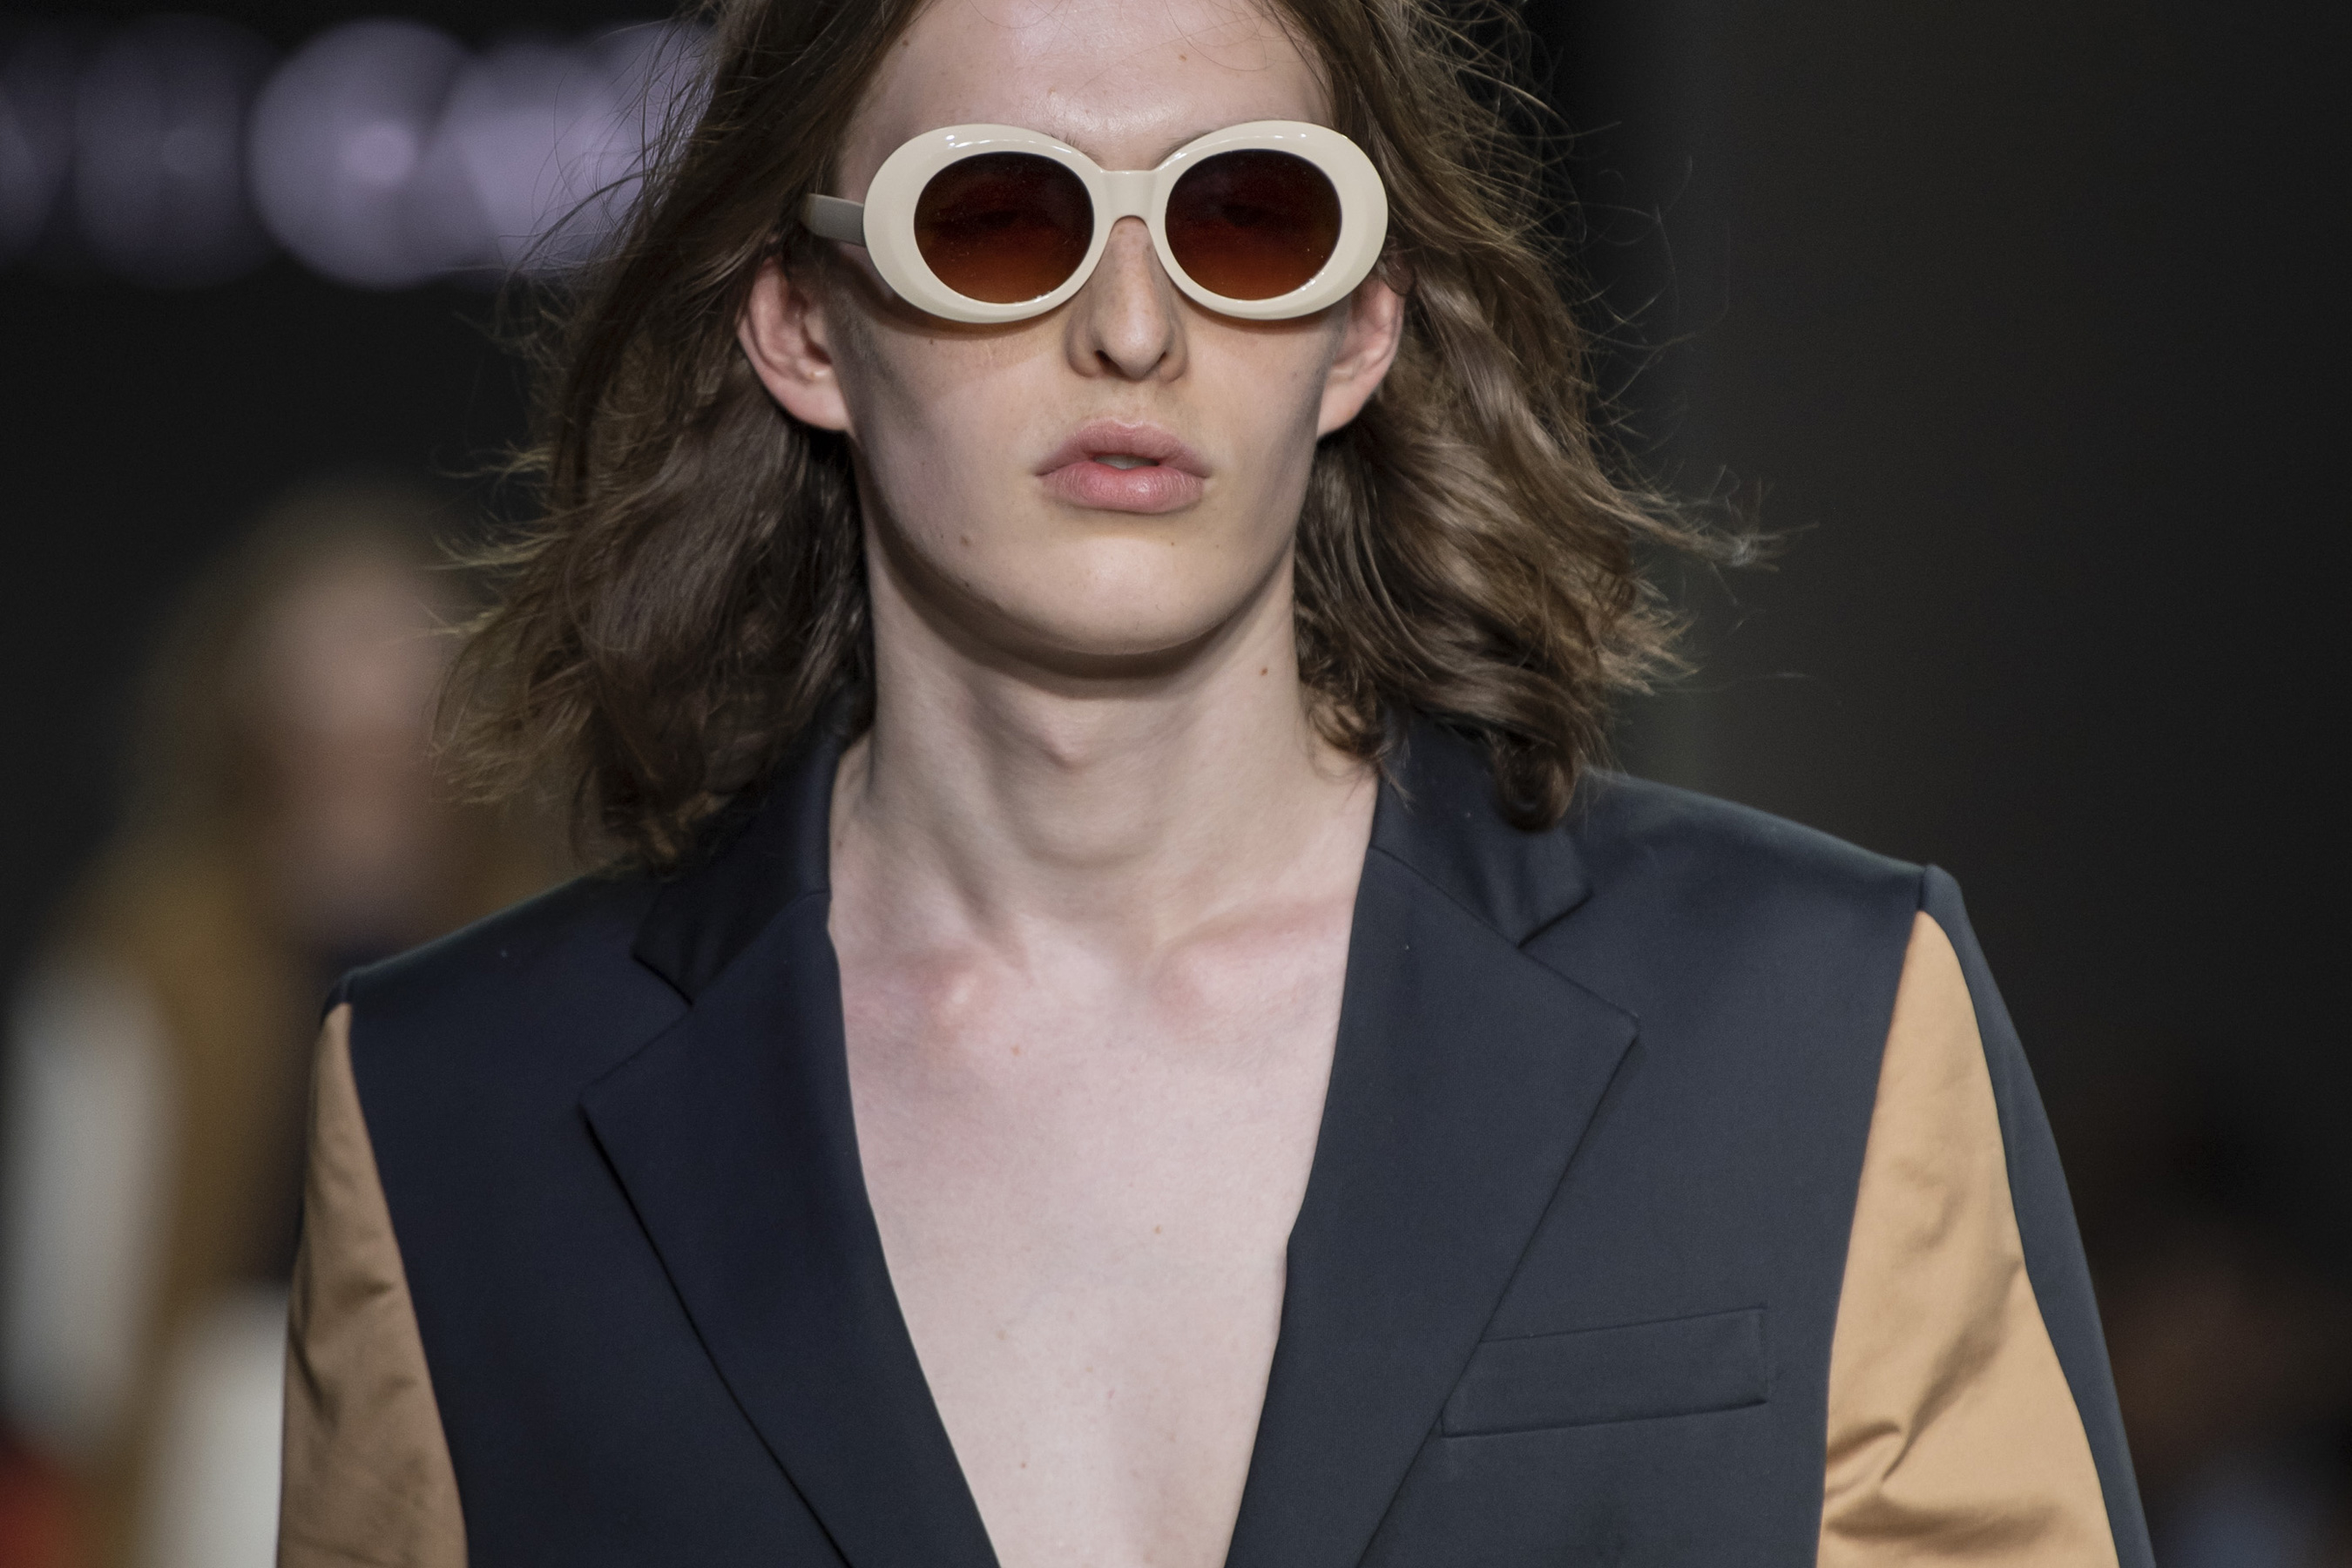 David Catalan Spring 2020 Men's Fashion Show Details